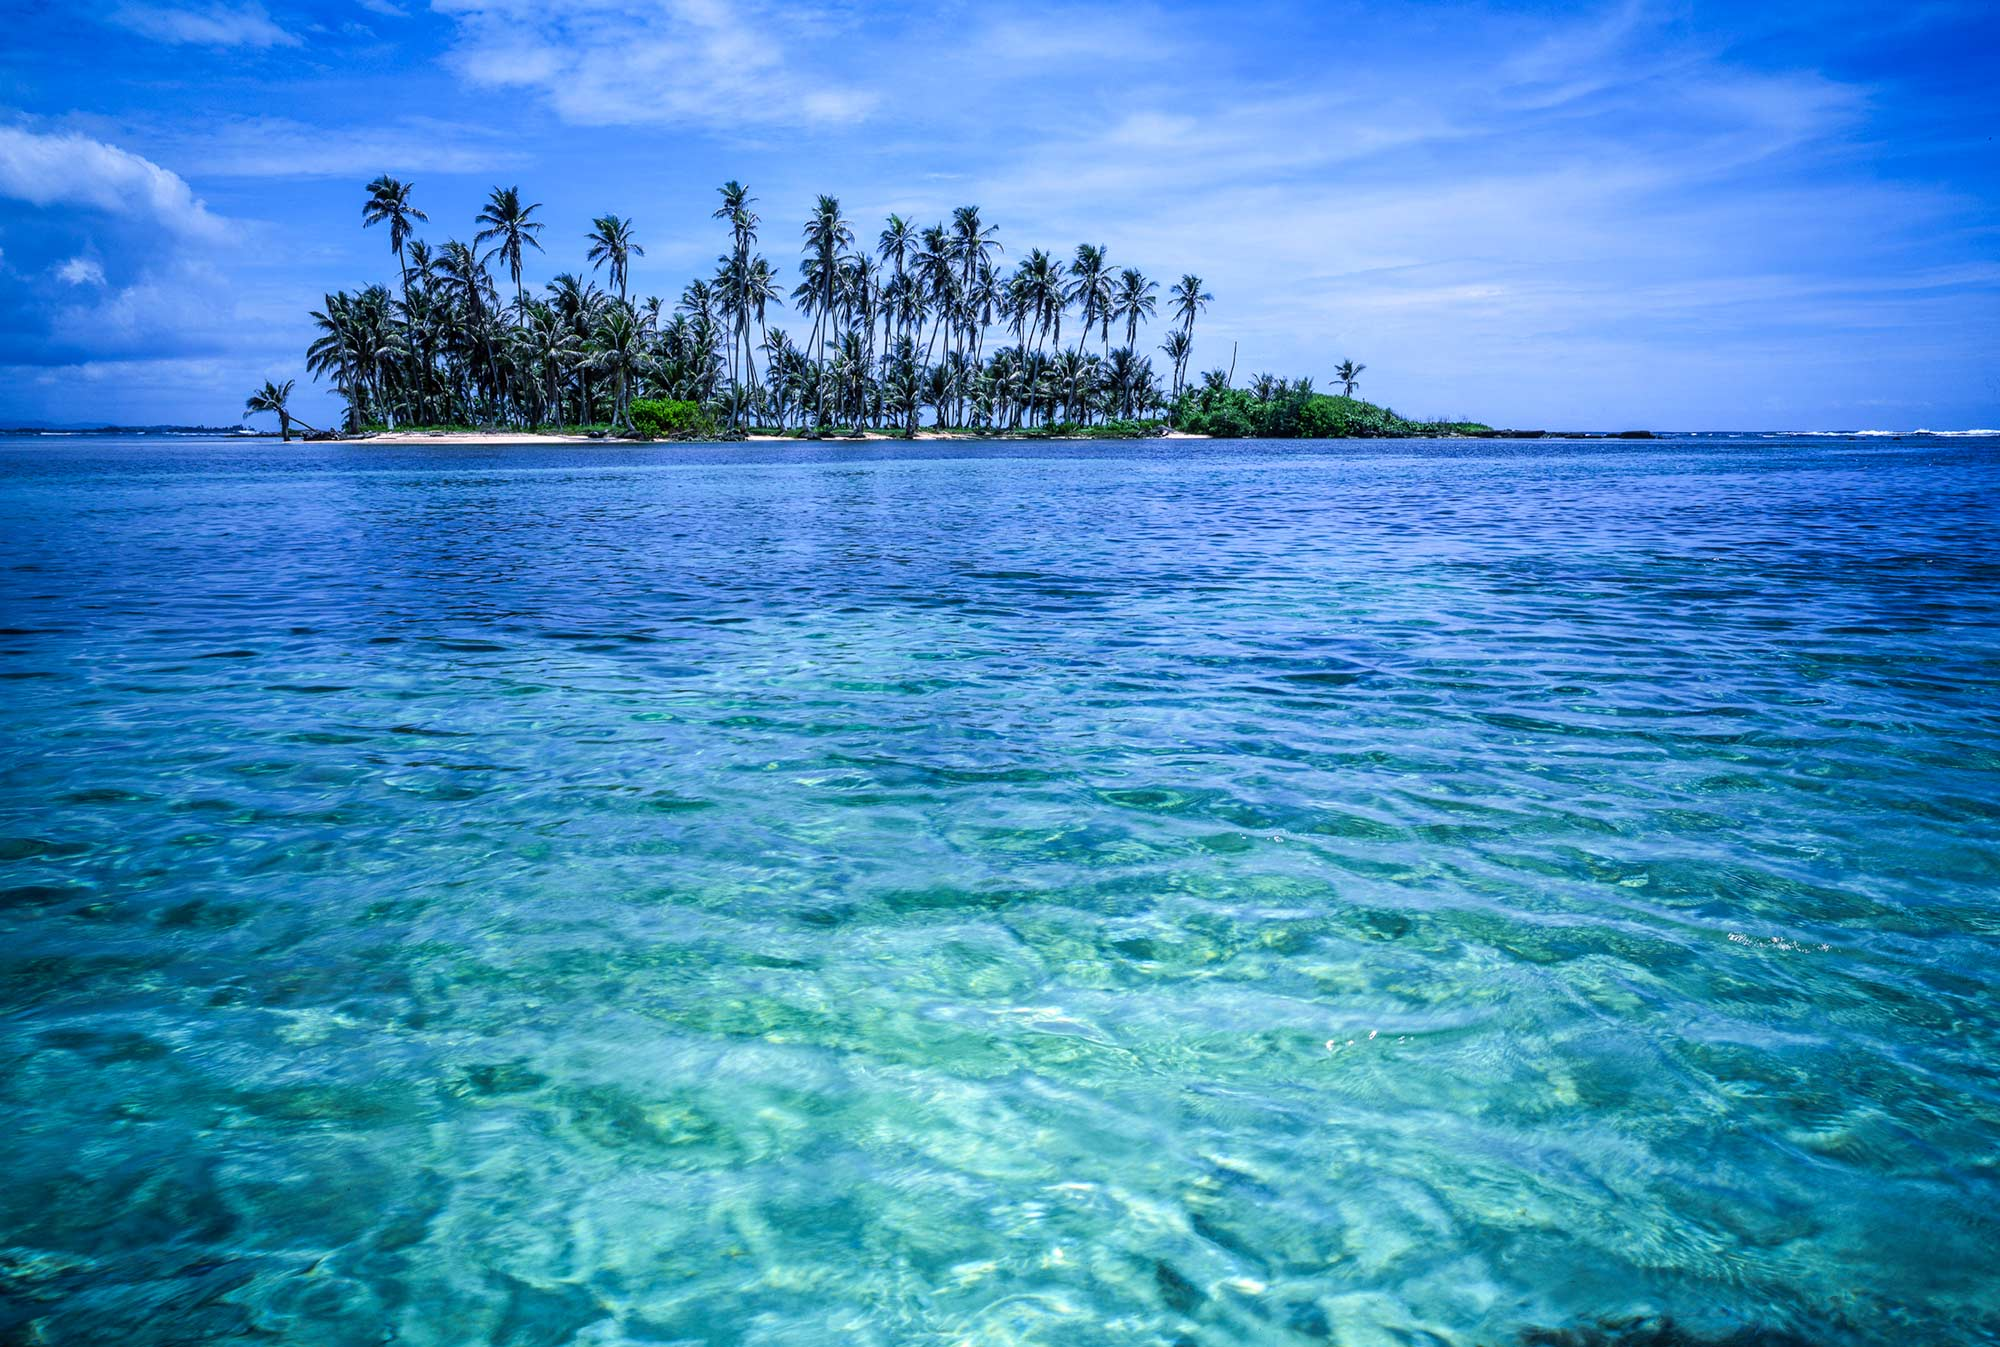 Beautiful landscape of San Blas Islands